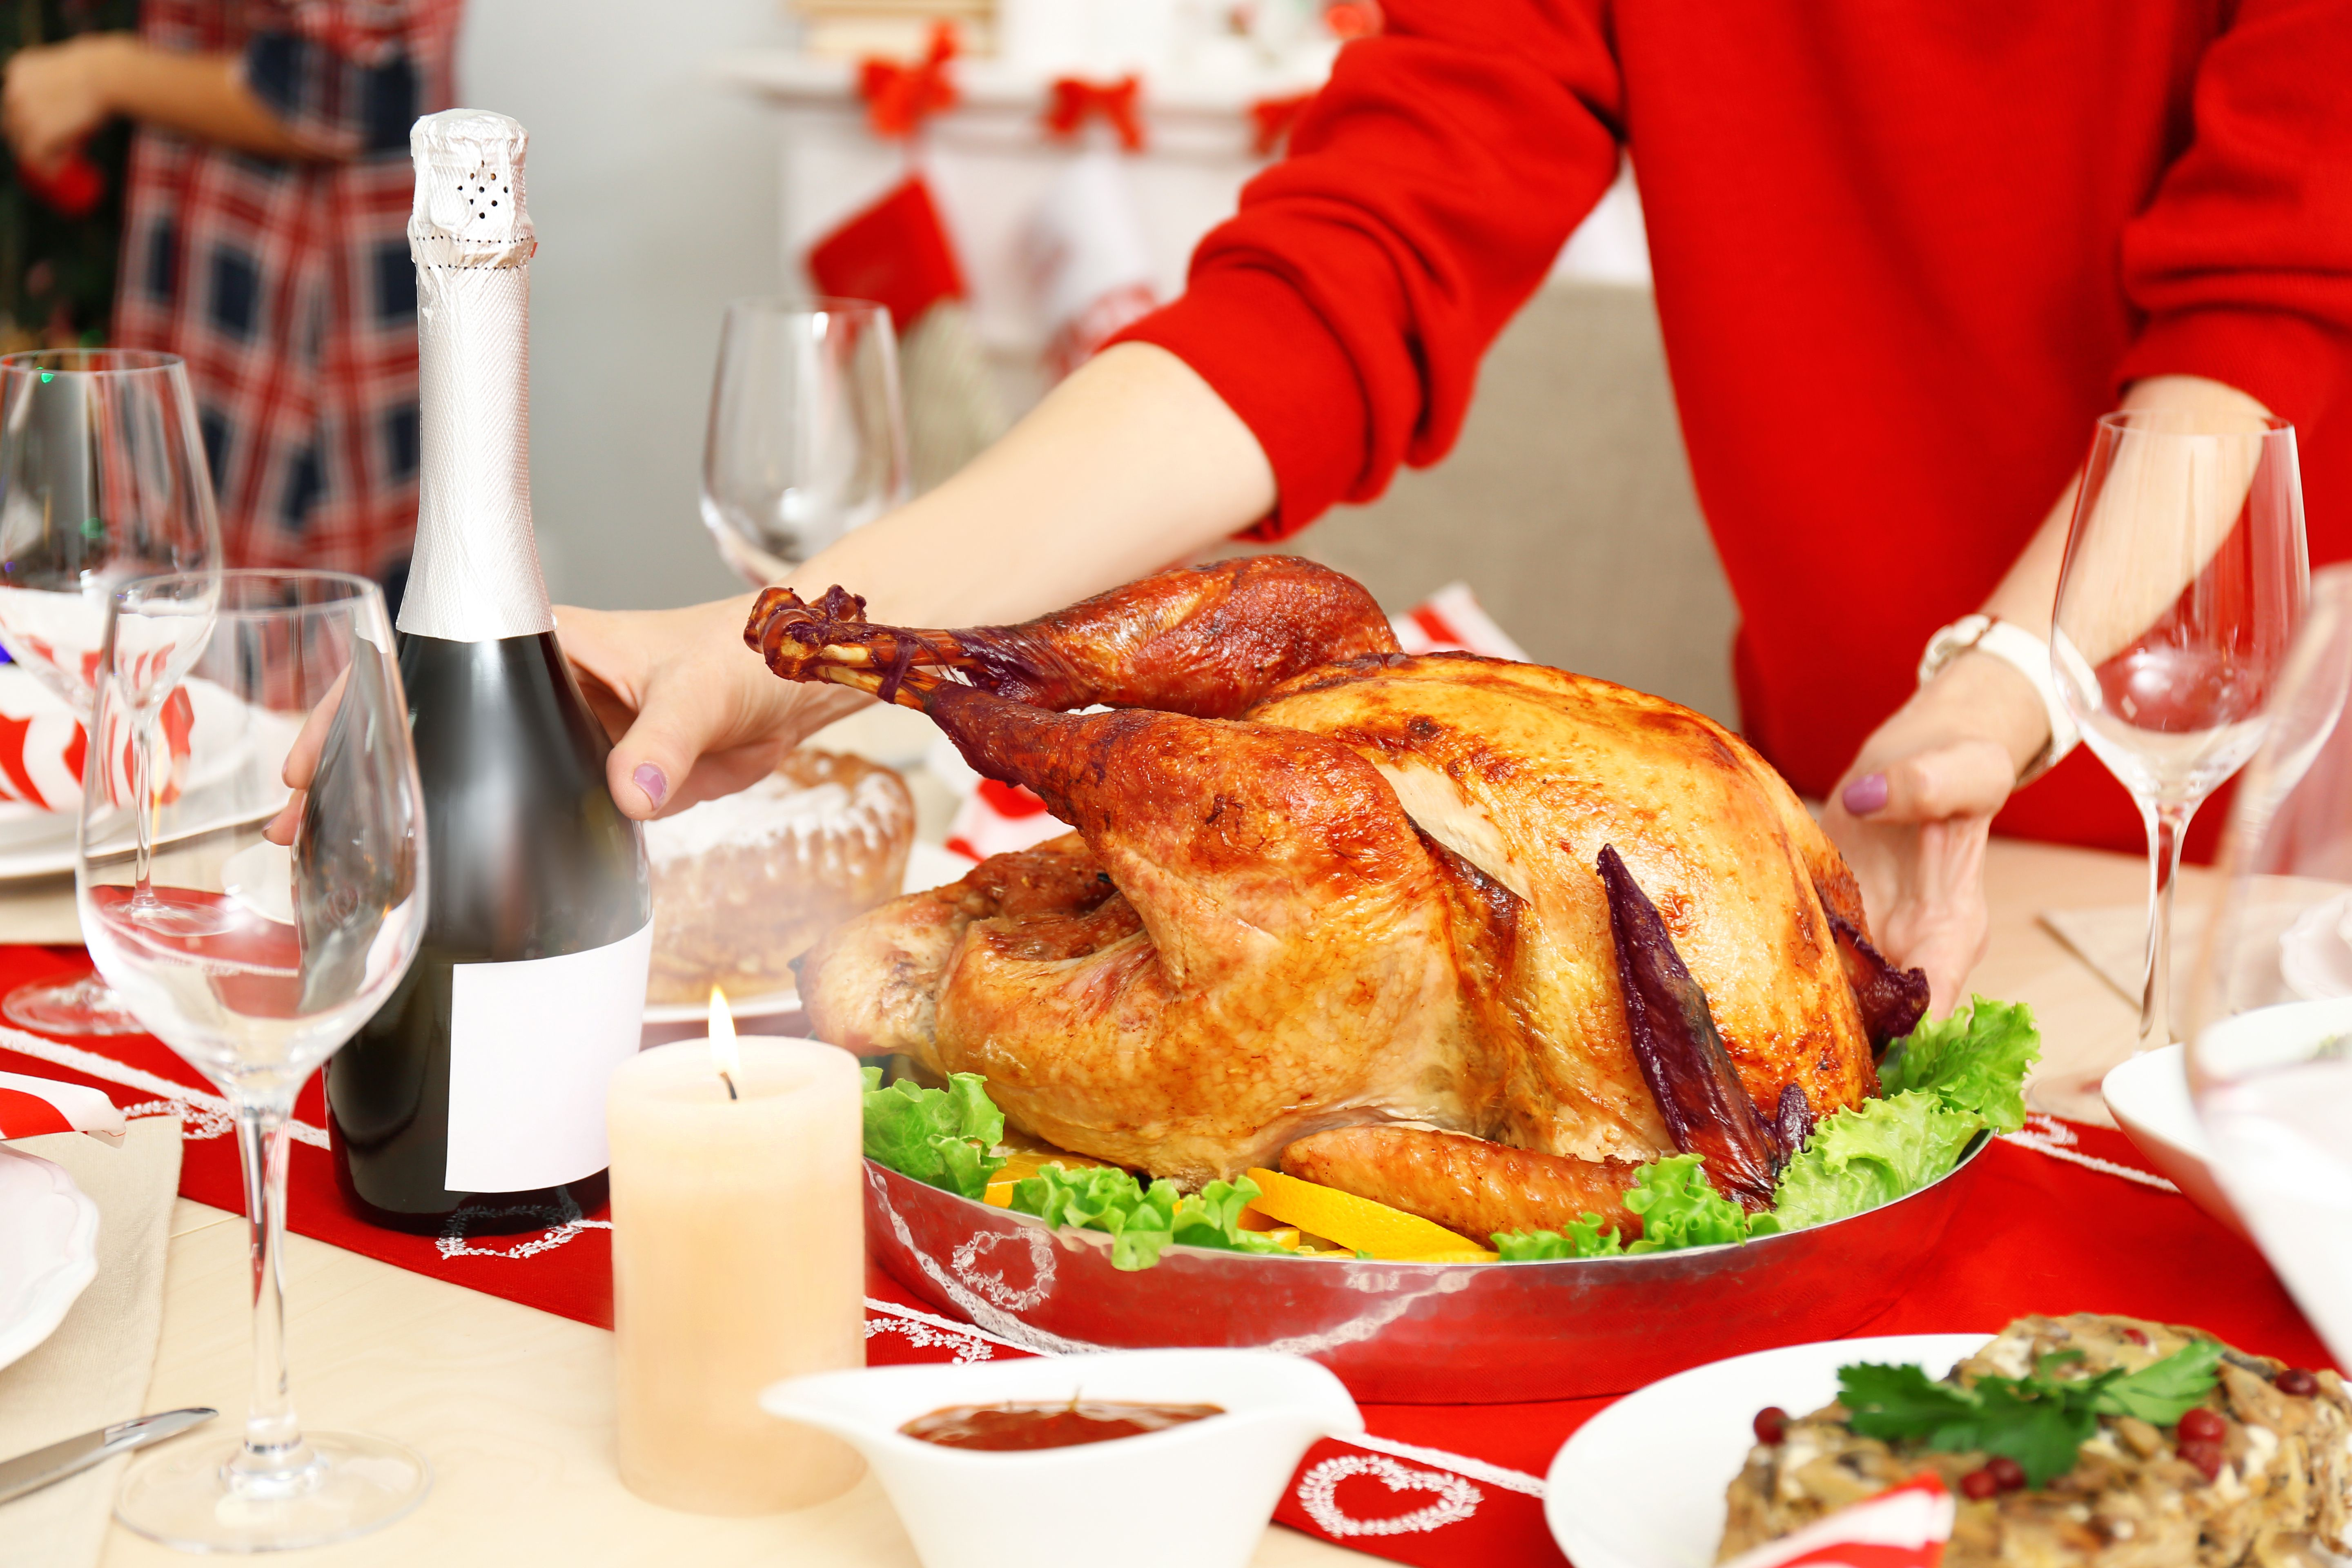 There S More Than One Way To Cook A Turkey But One Technique In Particular Has Skyrocketed In Popularity Over The Past Couple Of Cooking Turkey Cooking Turkey